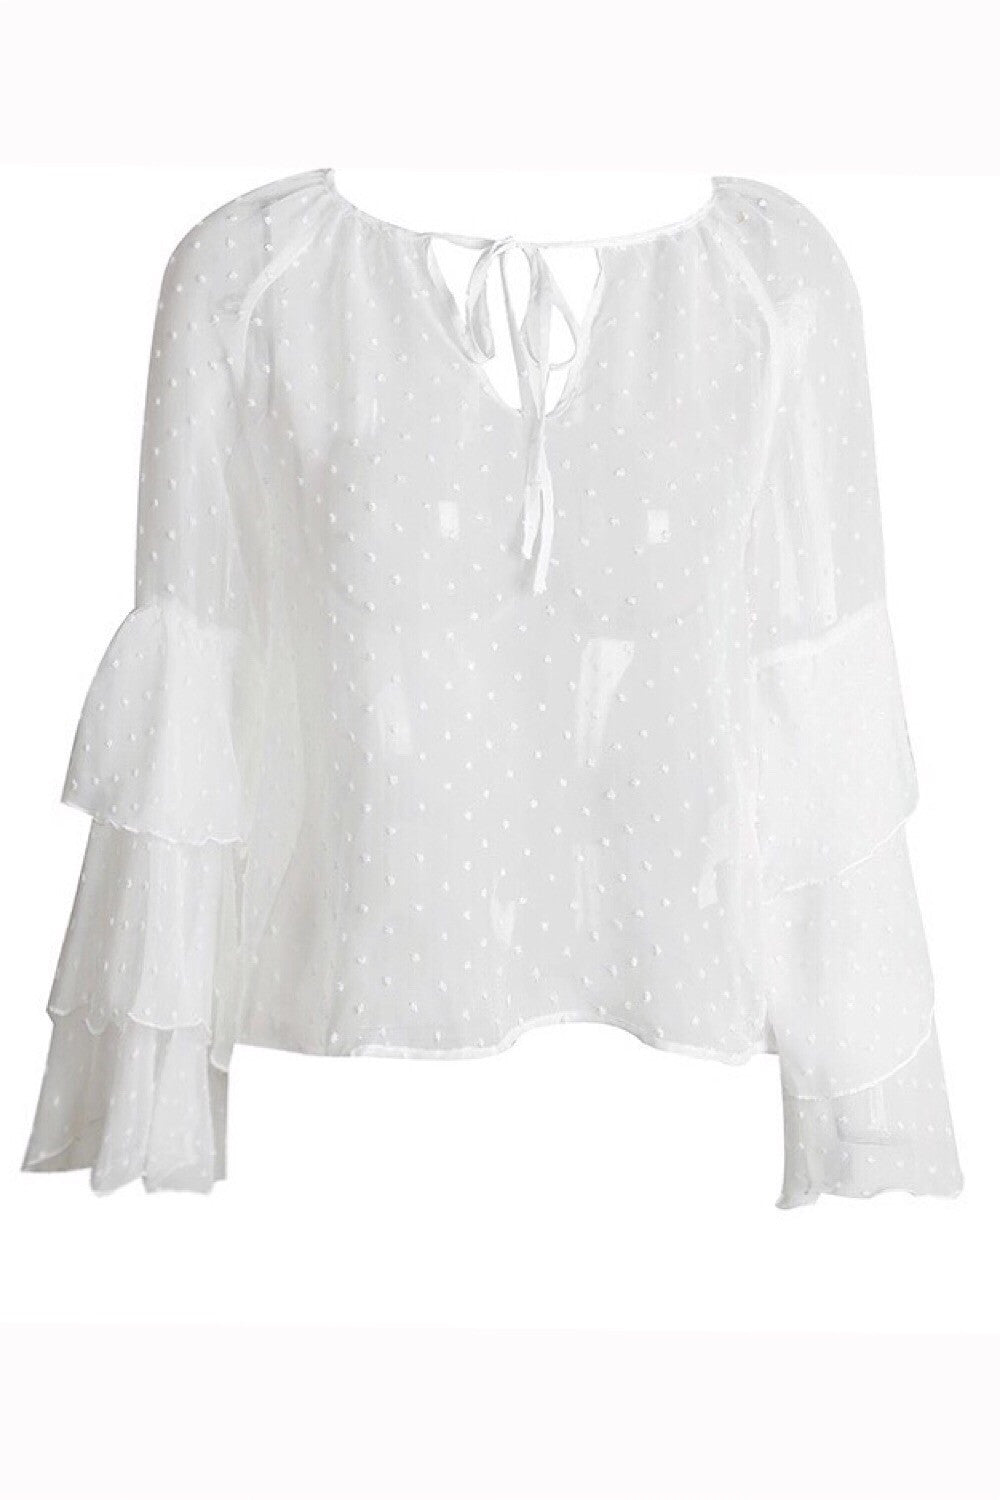 Triple Frills White Pom Pom Textured Blouse